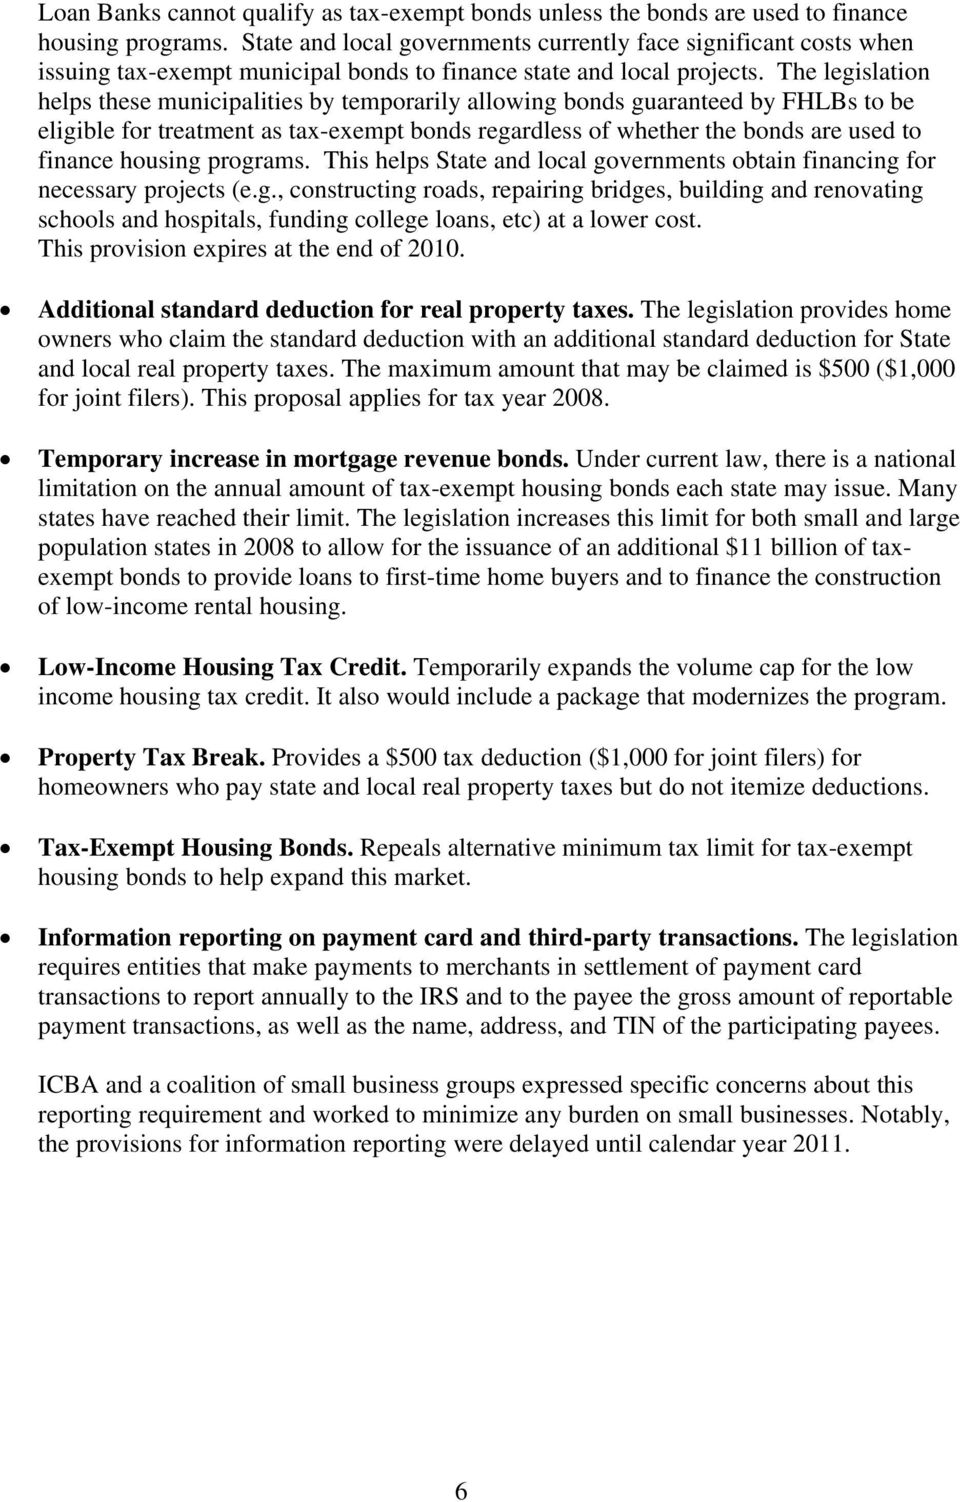 The legislation helps these municipalities by temporarily allowing bonds guaranteed by FHLBs to be eligible for treatment as tax-exempt bonds regardless of whether the bonds are used to finance